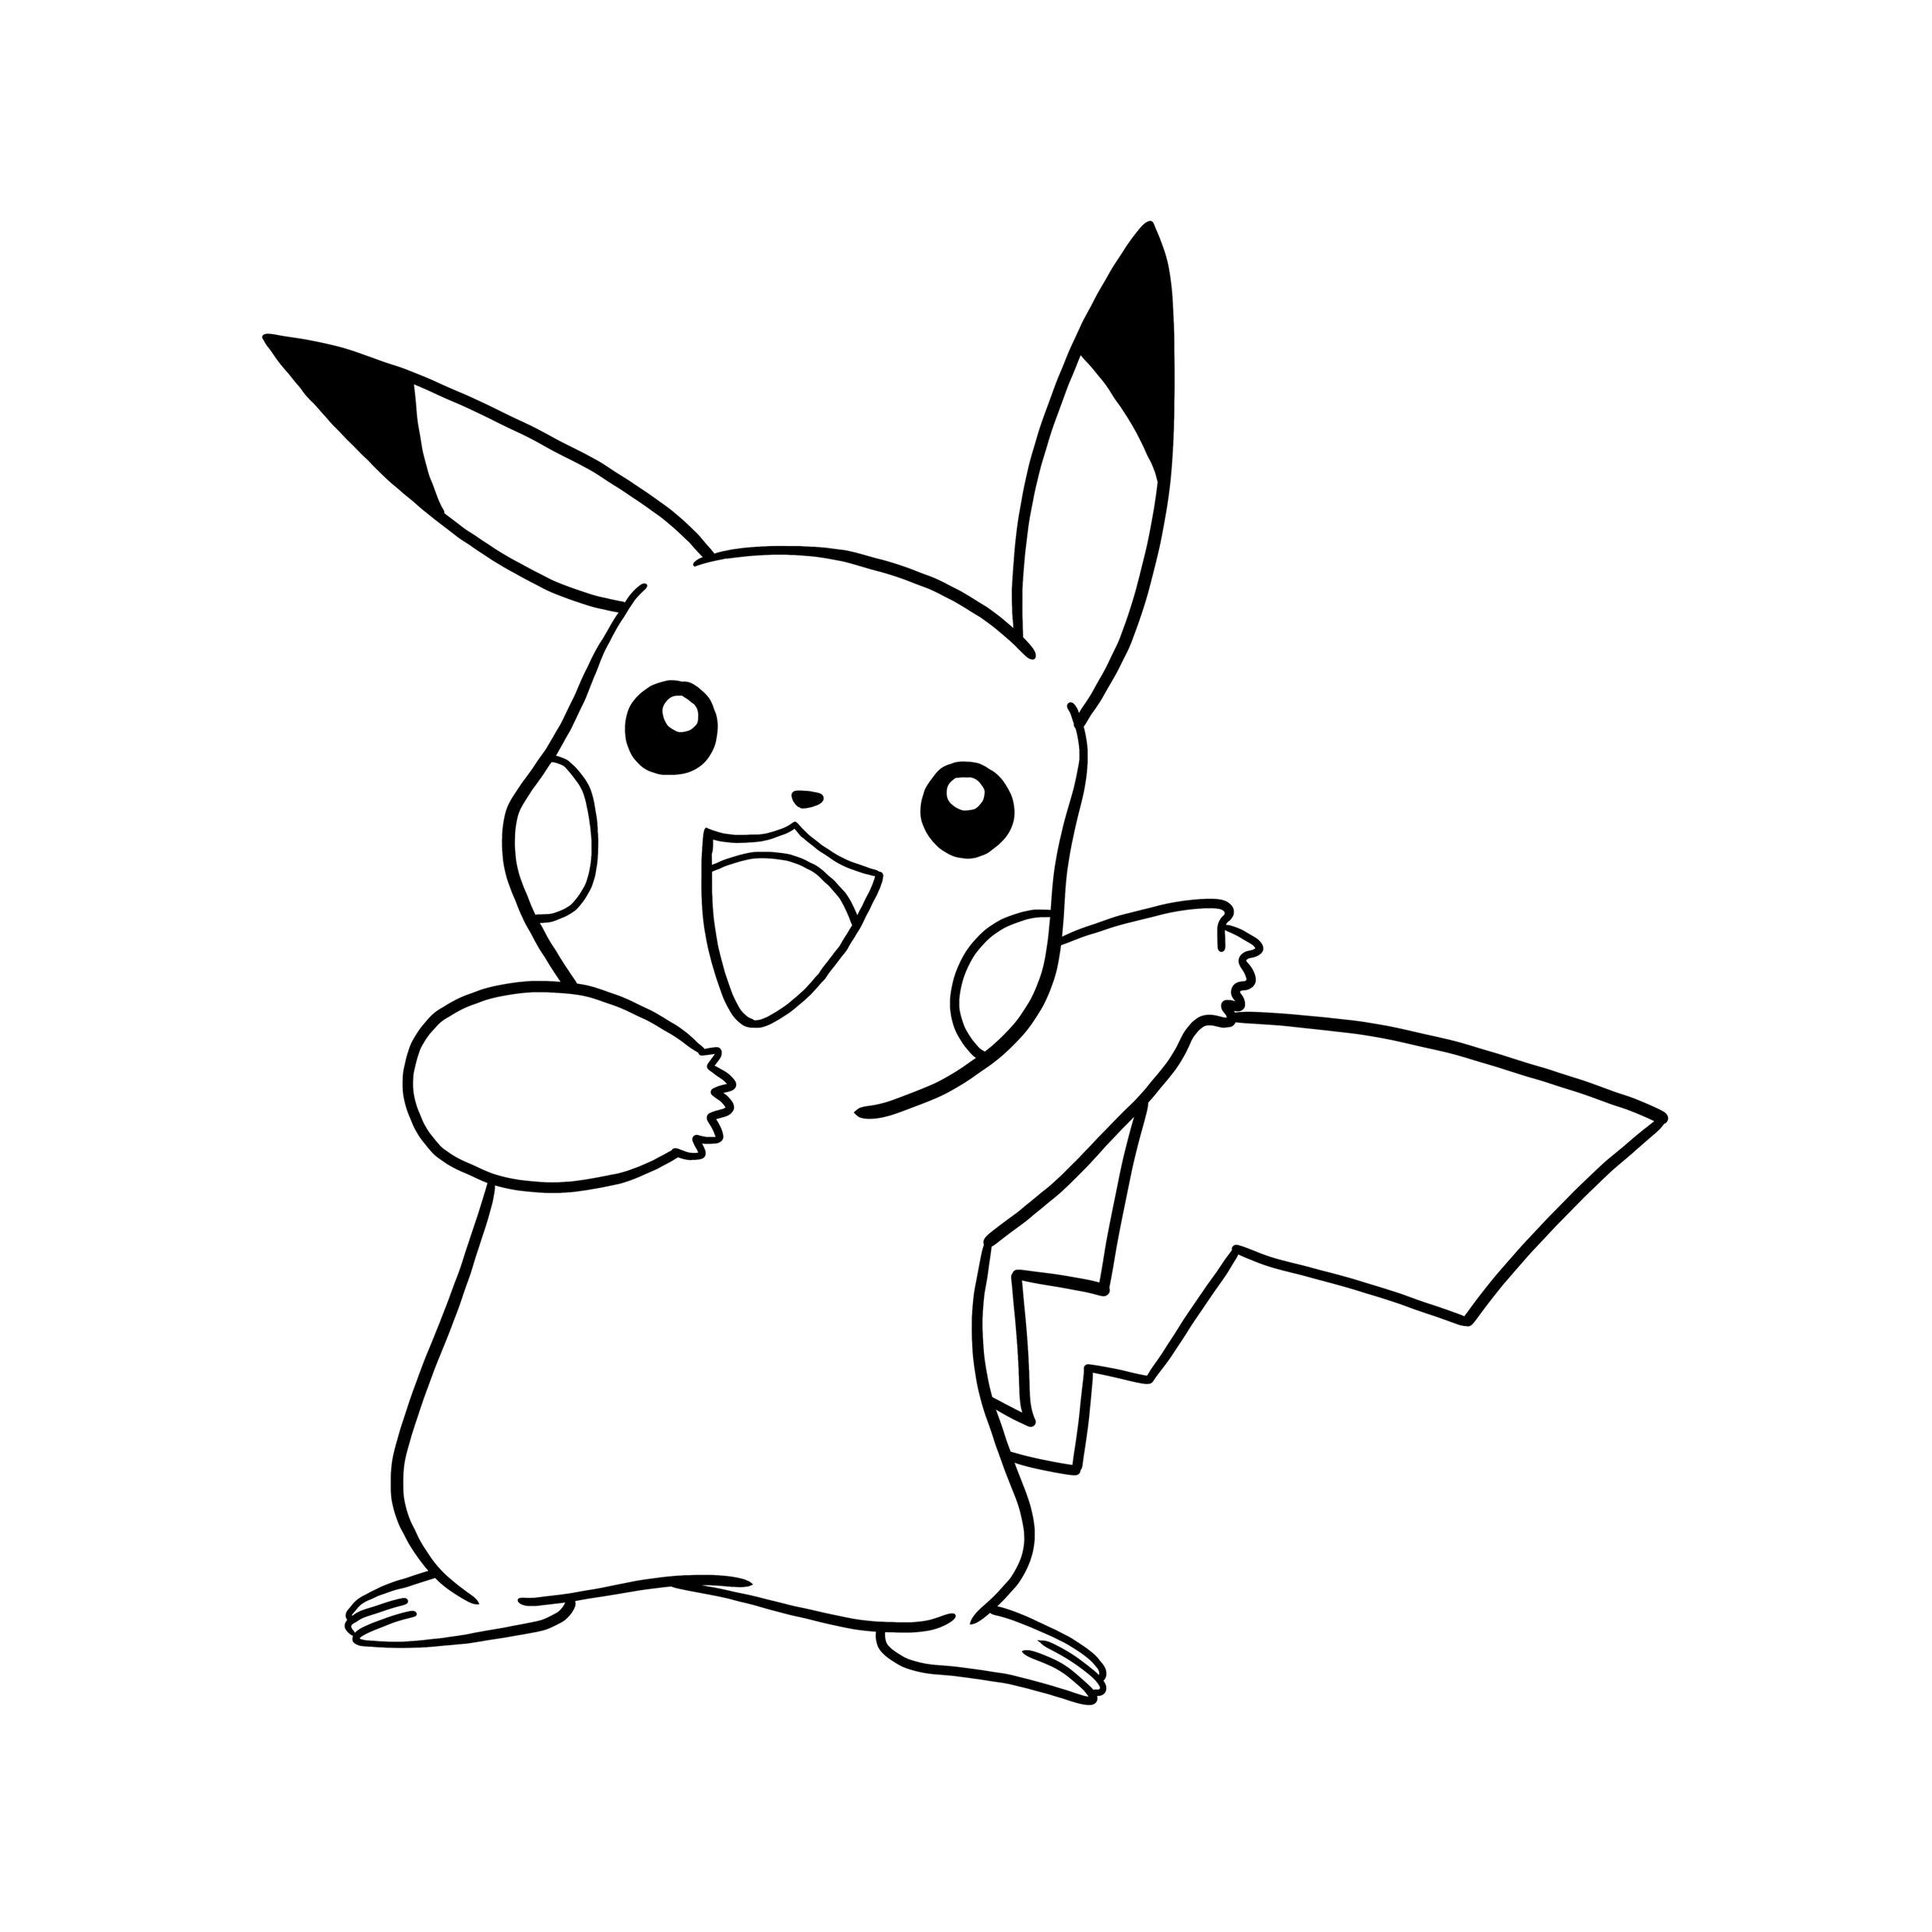 2480x2480 Pikachu Drawings New Easy Pikachu Drawing How To Draw Pikachu